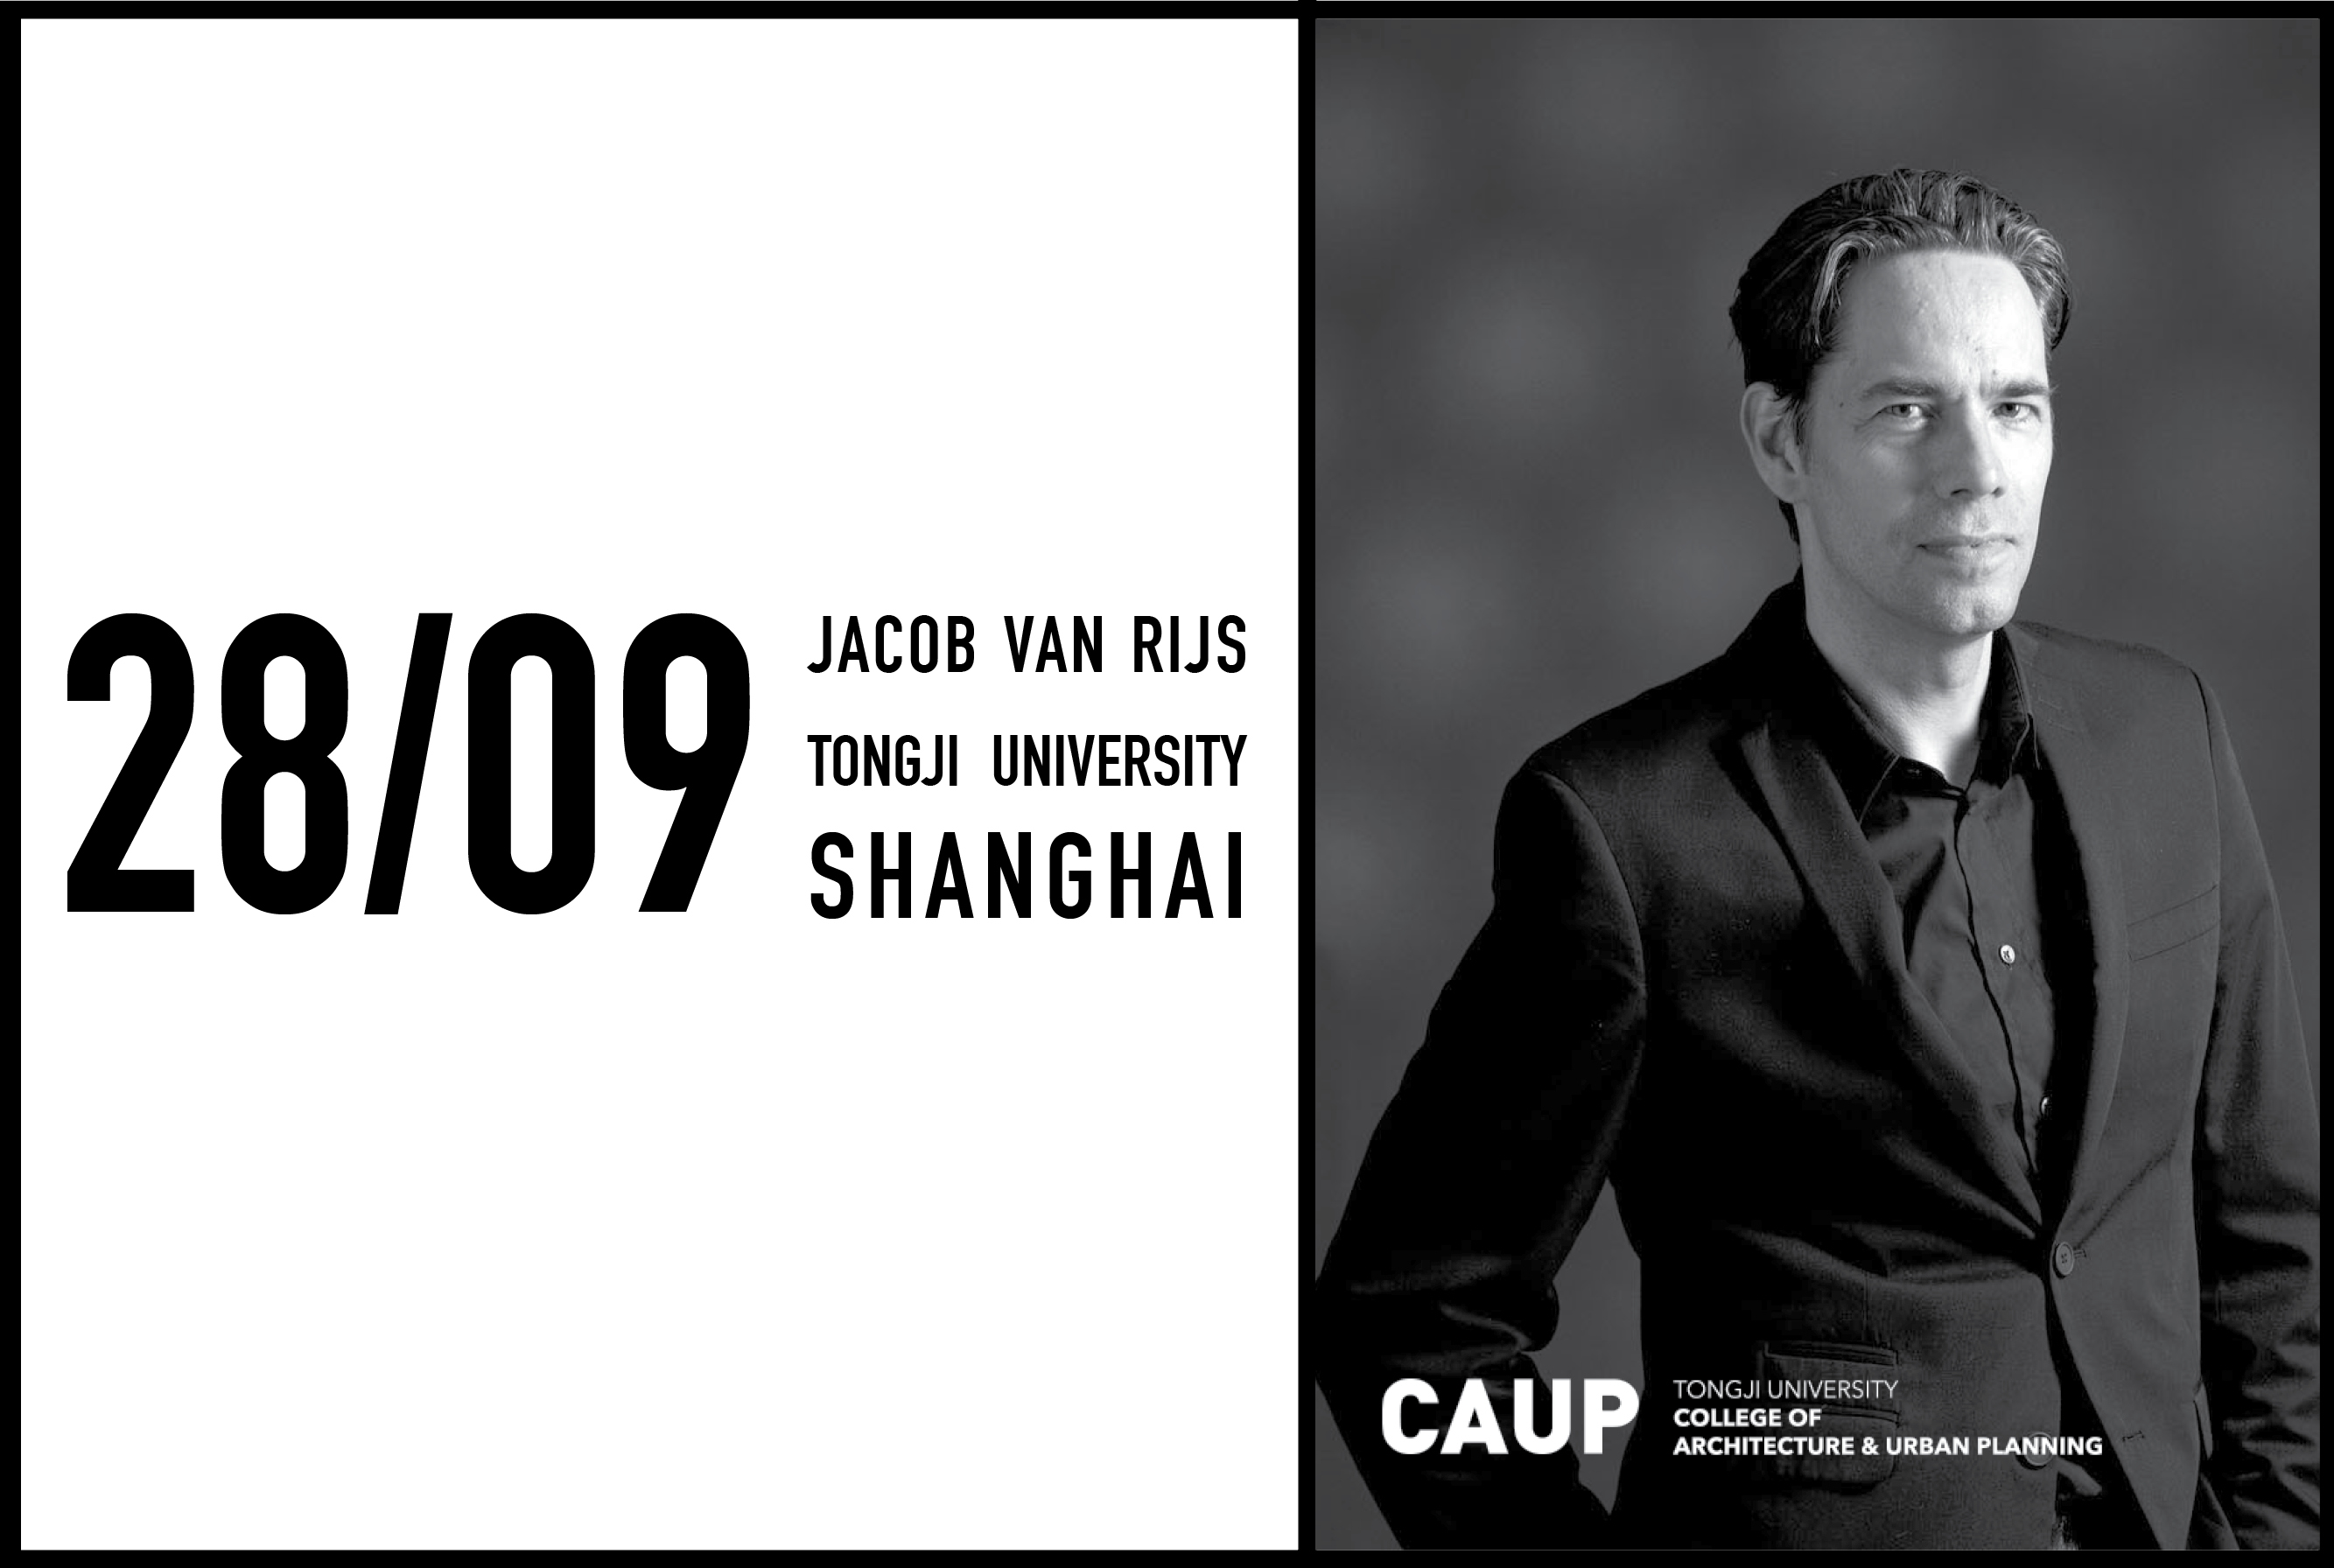 Jacob van Rijs to lecture at Tongji University in Shanghai, 28 september 2017